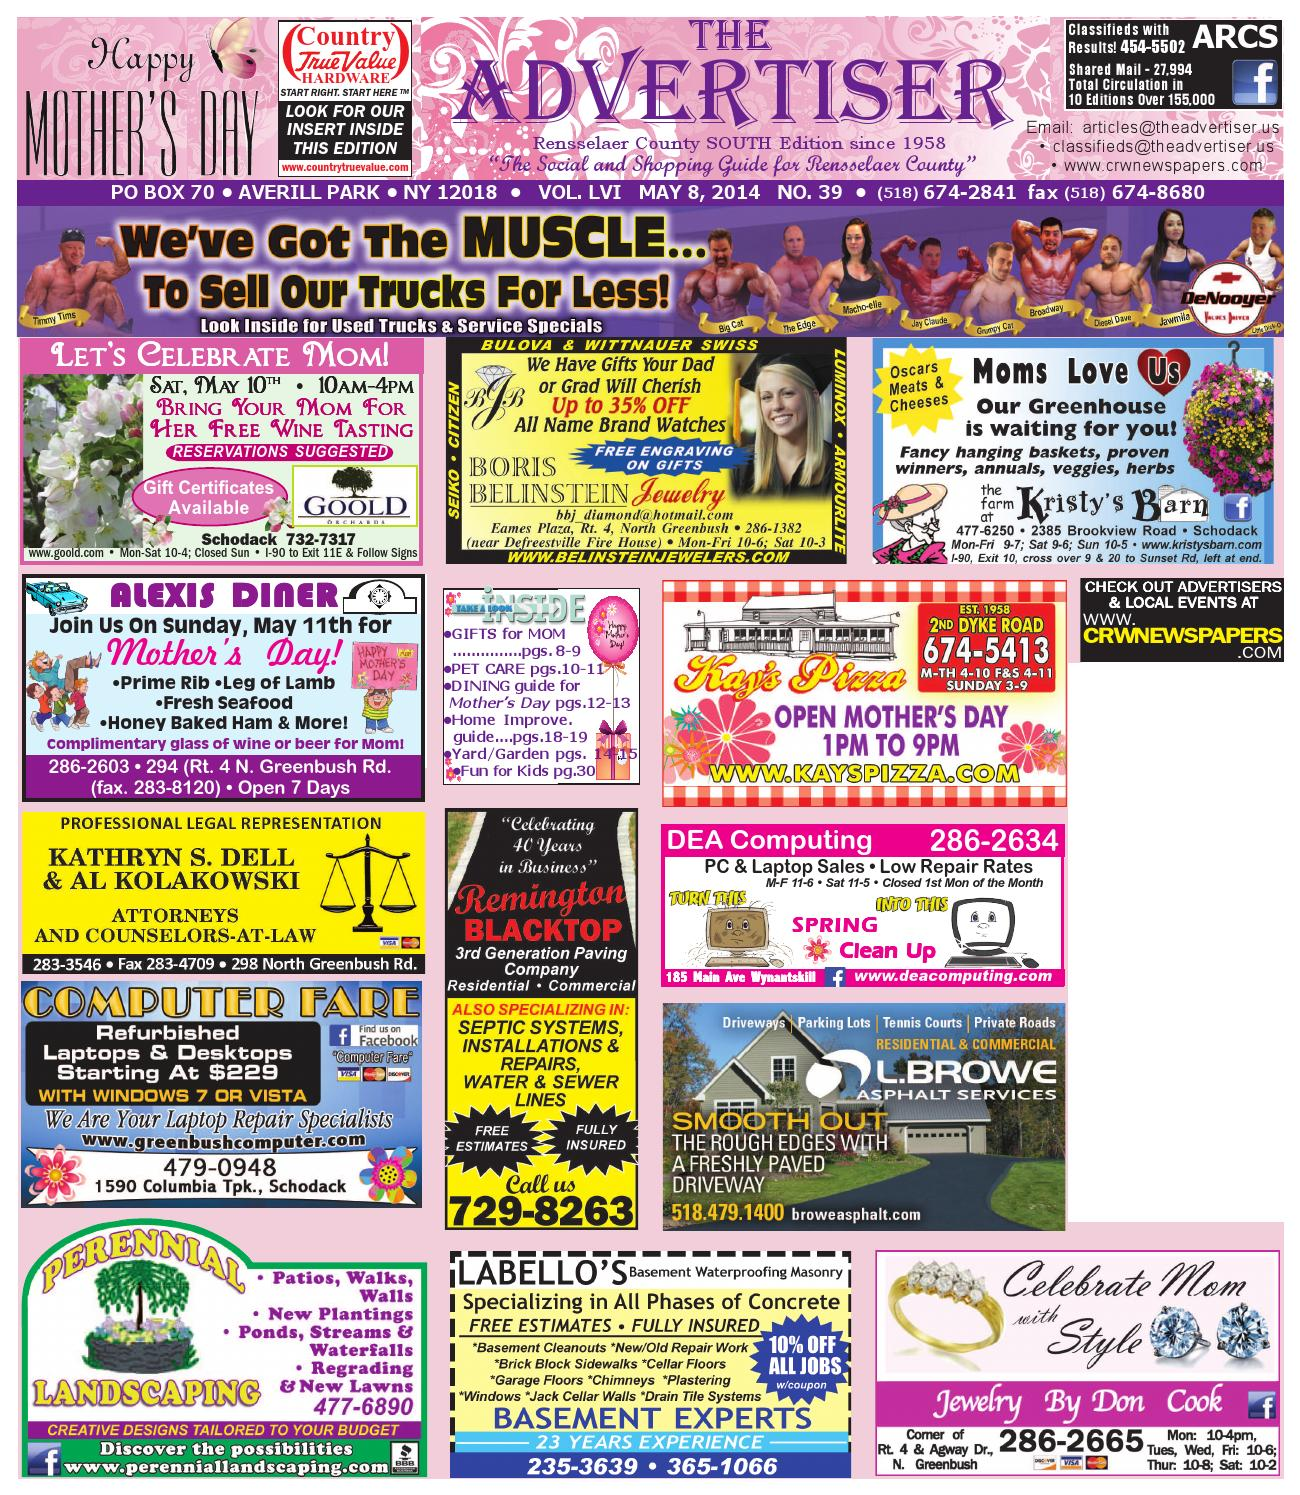 Advertiser south pennysaver 050814 by capital region weekly advertiser south pennysaver 050814 by capital region weekly newspapers issuu fandeluxe Choice Image